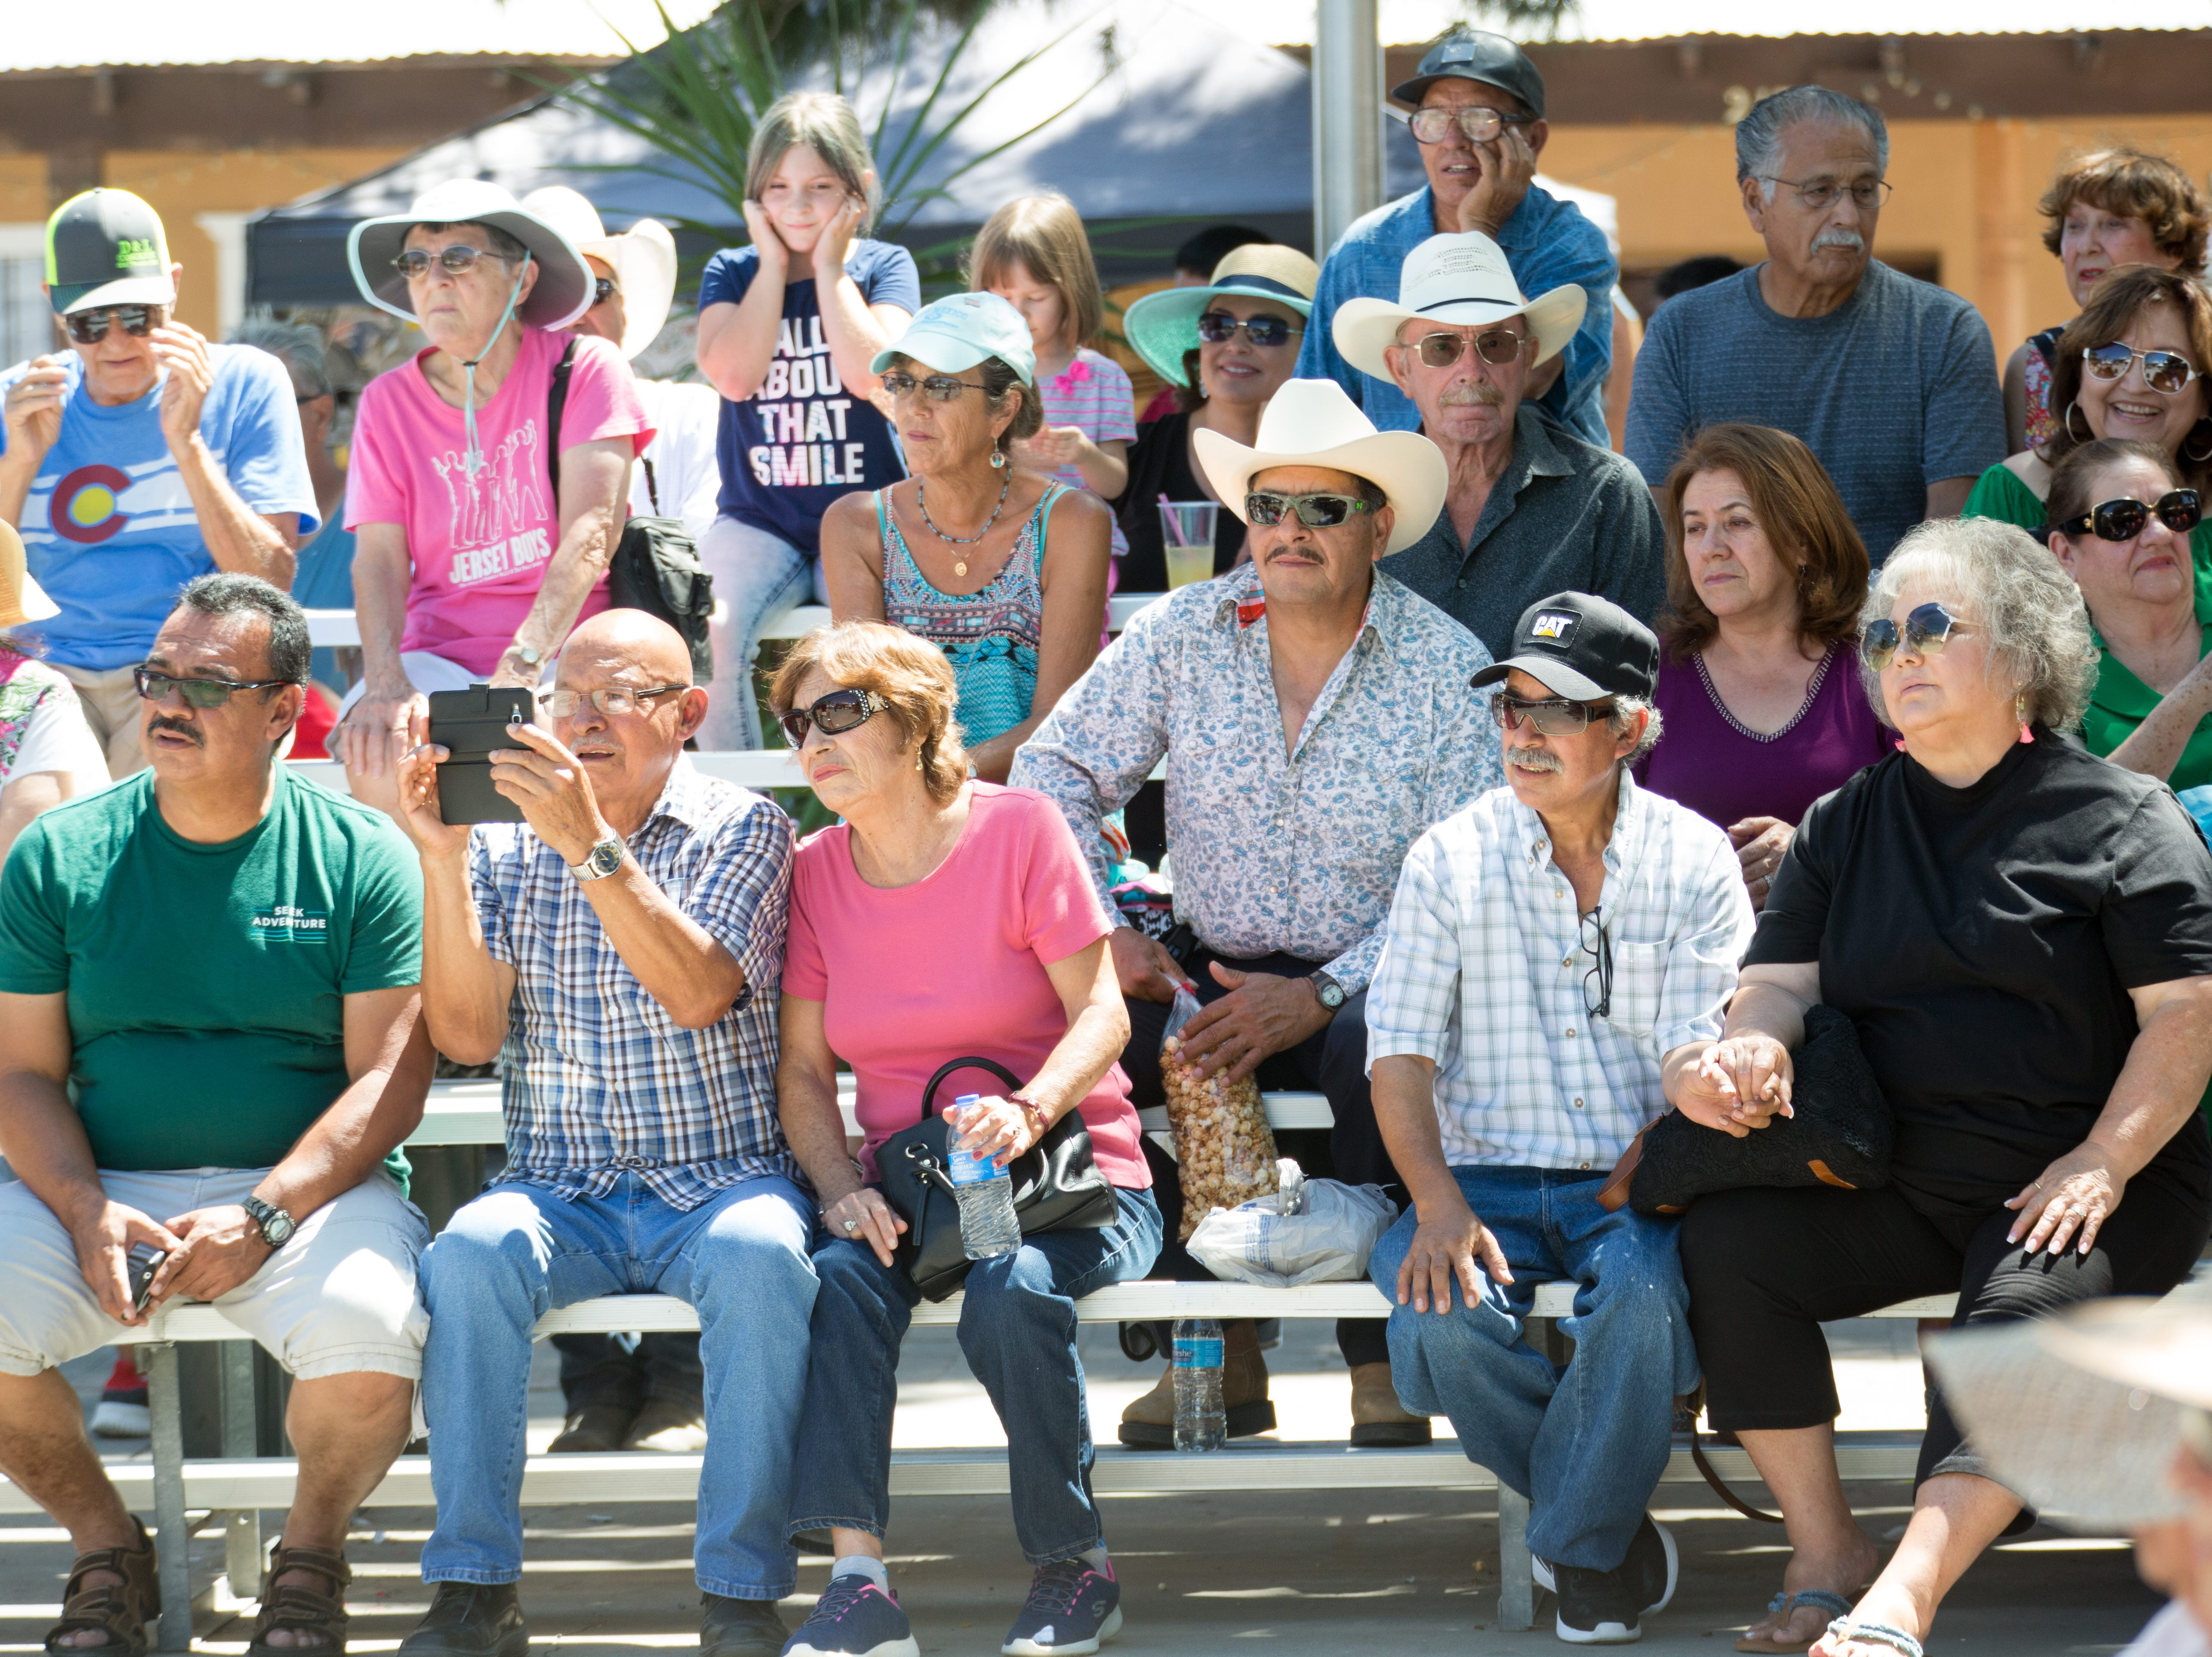 Many come to enjoy the festivities and watch the entertainment on Sunday, September 16, 2018 during the Diez y Seis de Septiembre Fiesta at the Mesilla Plaza.